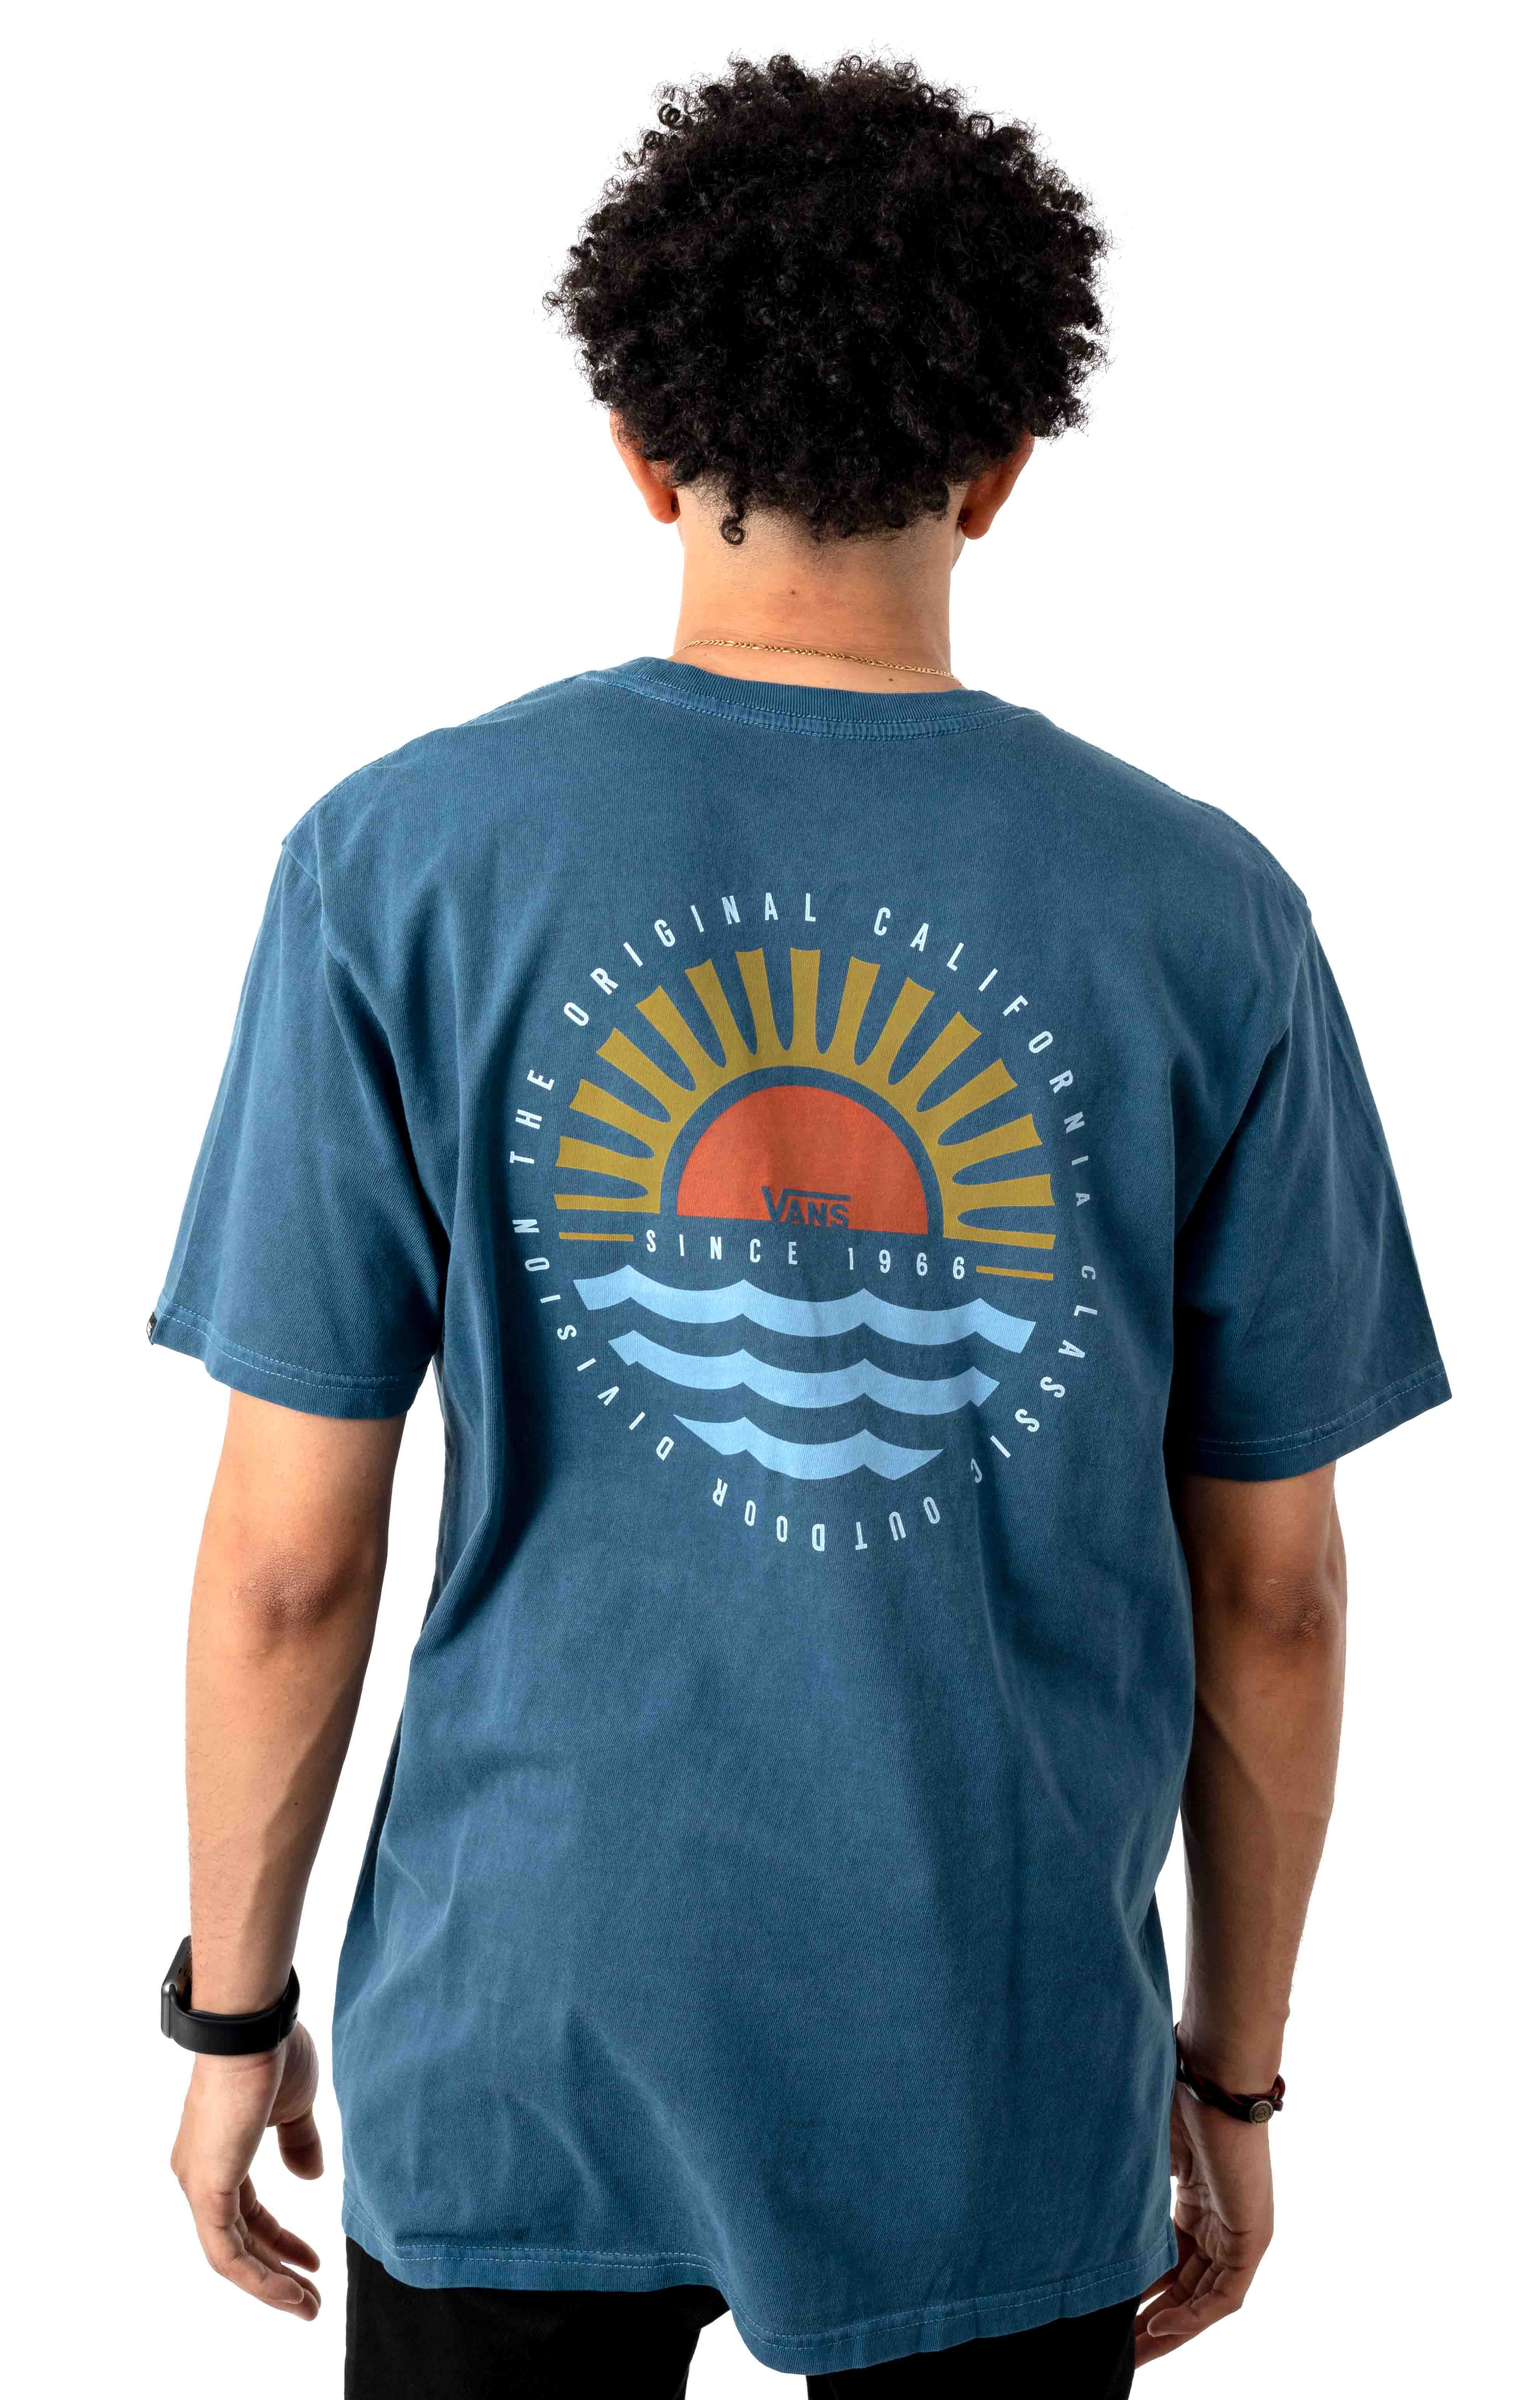 Vans Sunset Beach T-Shirt - Gibraltar Sea